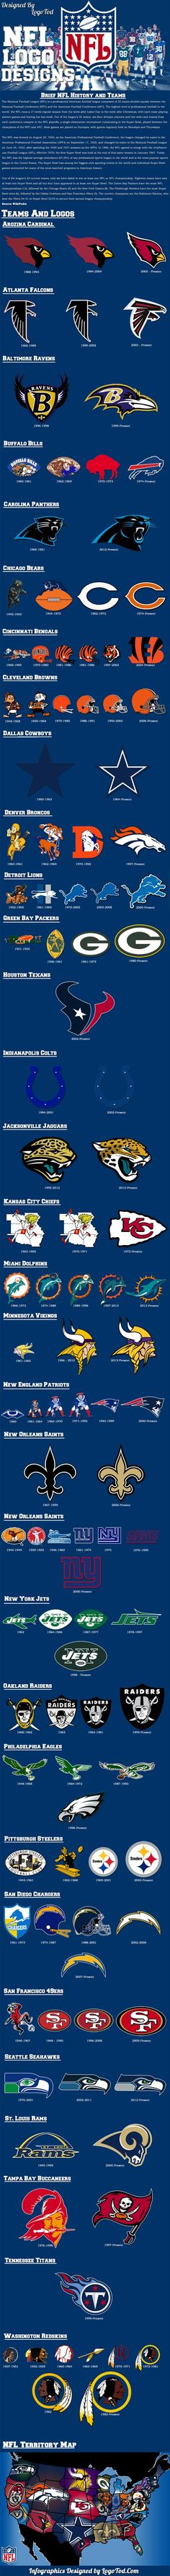 The History of NFL Logo Designs infographic